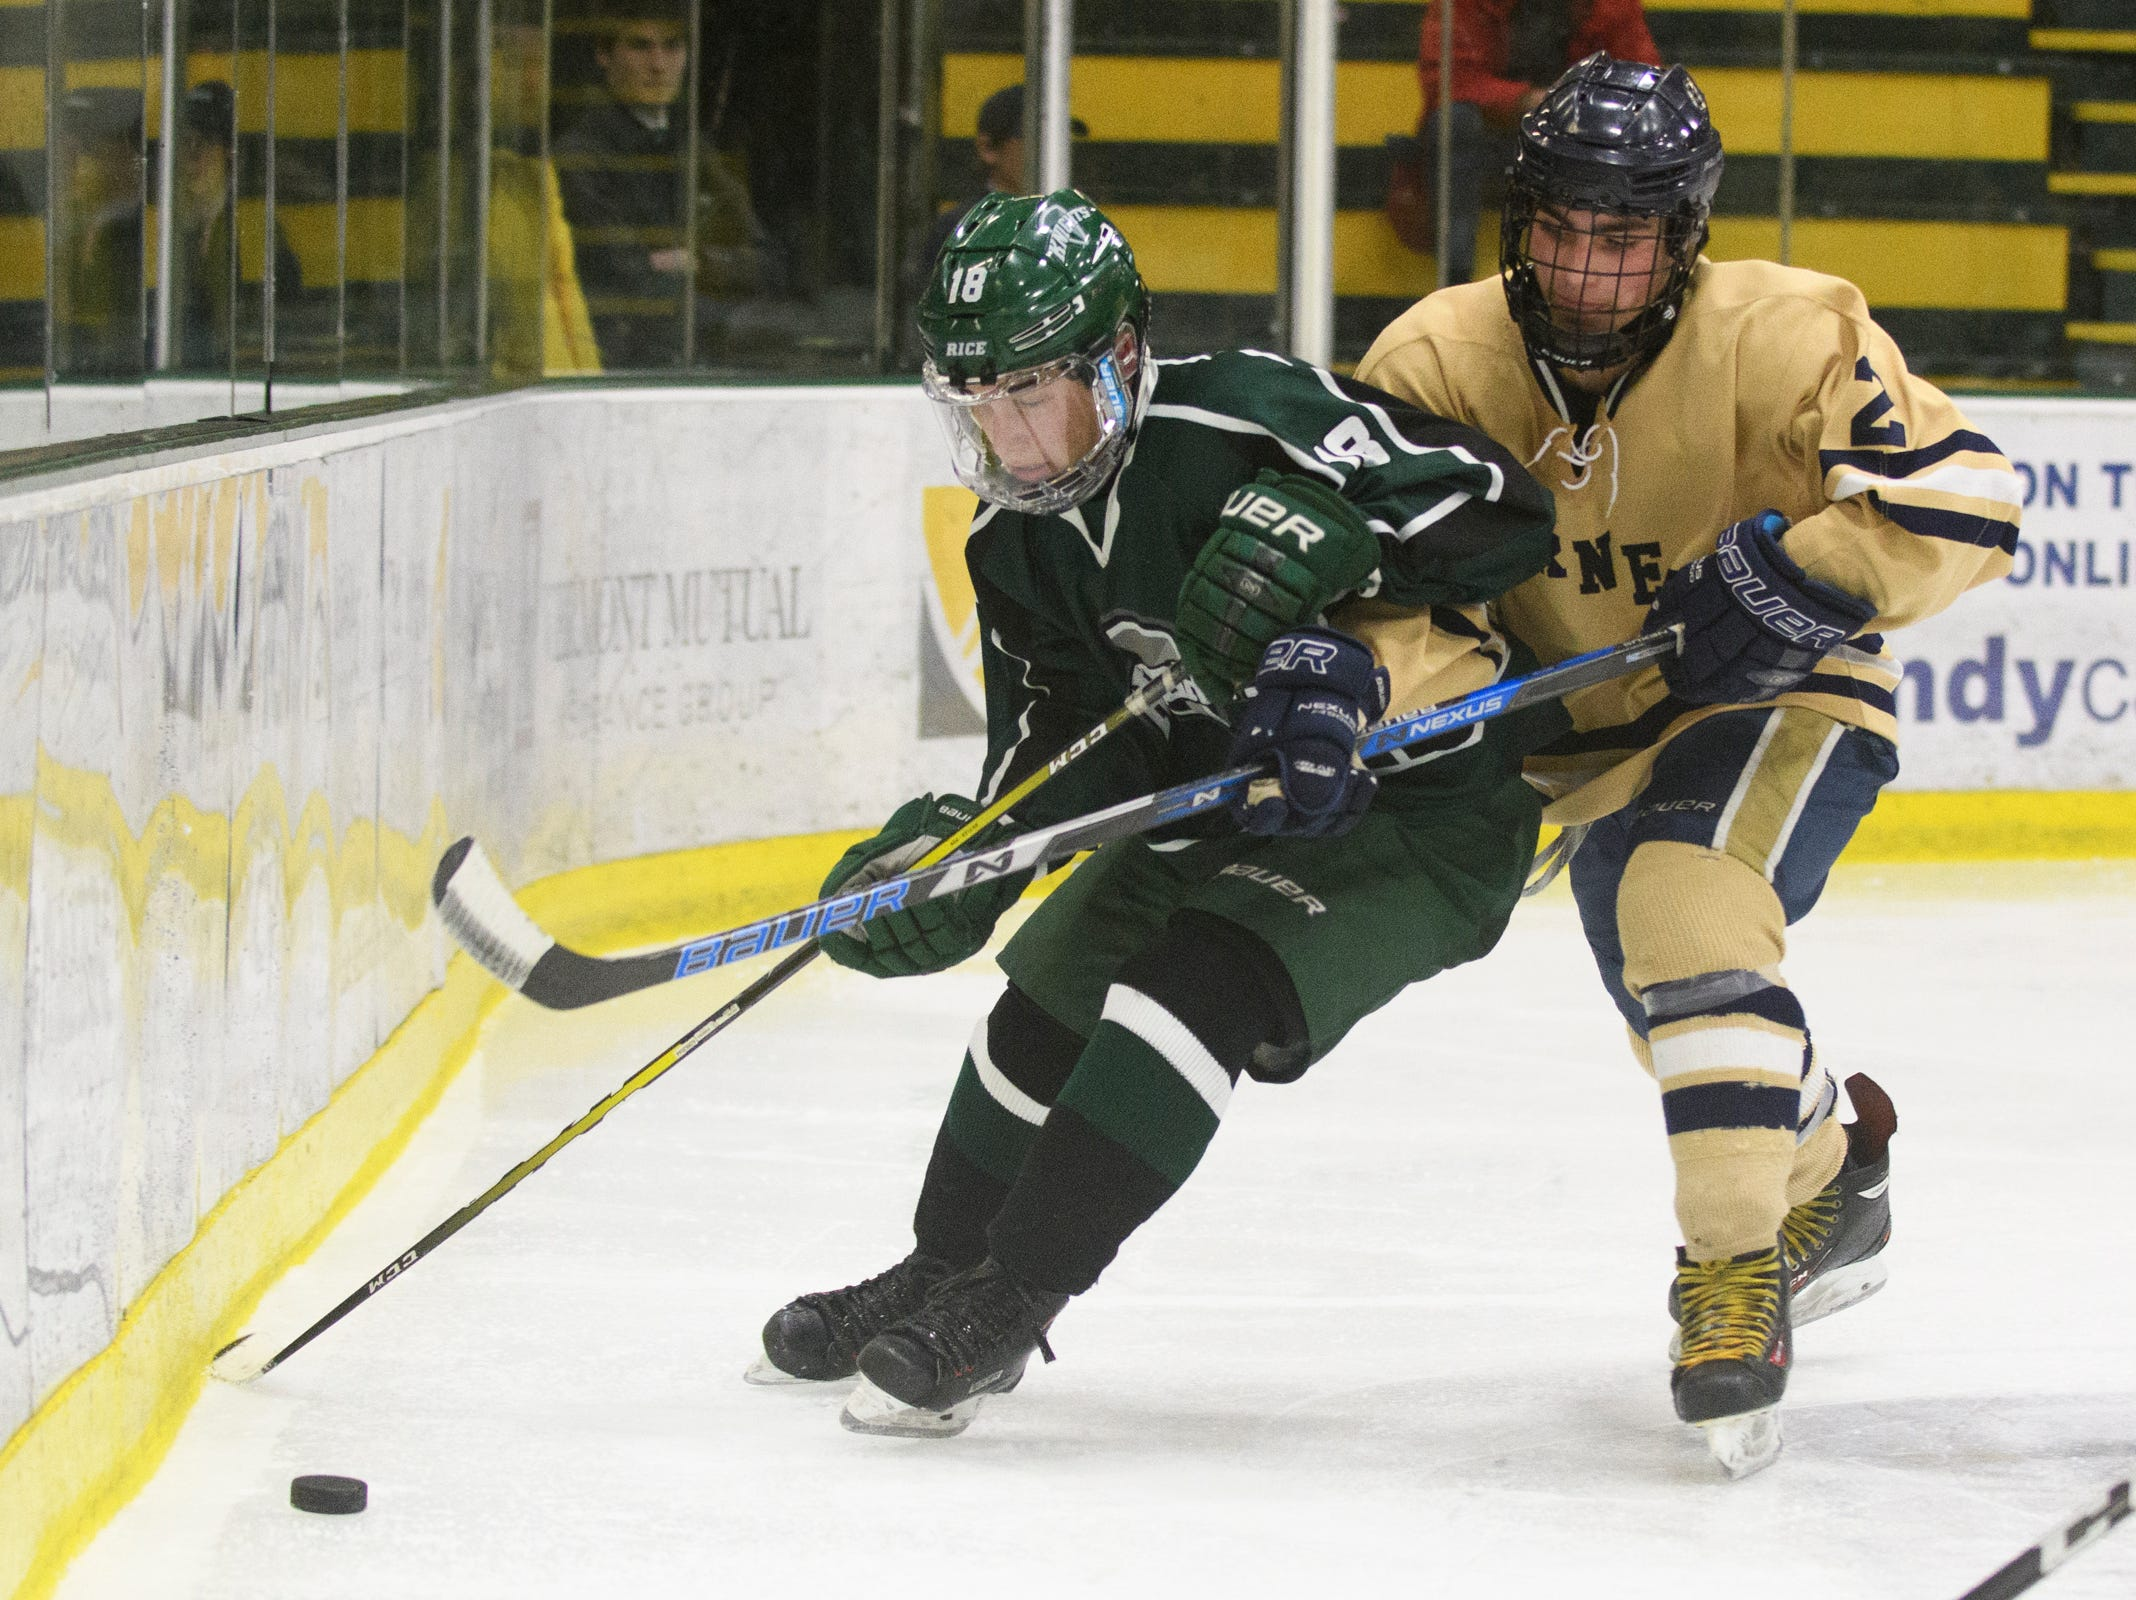 Essex's Grady Cram (2) battles for the puck with Rice's Sam Rubman (18) during the DI boys hockey championship game between the Rice Green Knights and the Essex Hornets at Gutterson Field House on Wednesday night March 13, 2019 in Burlington, Vermont.